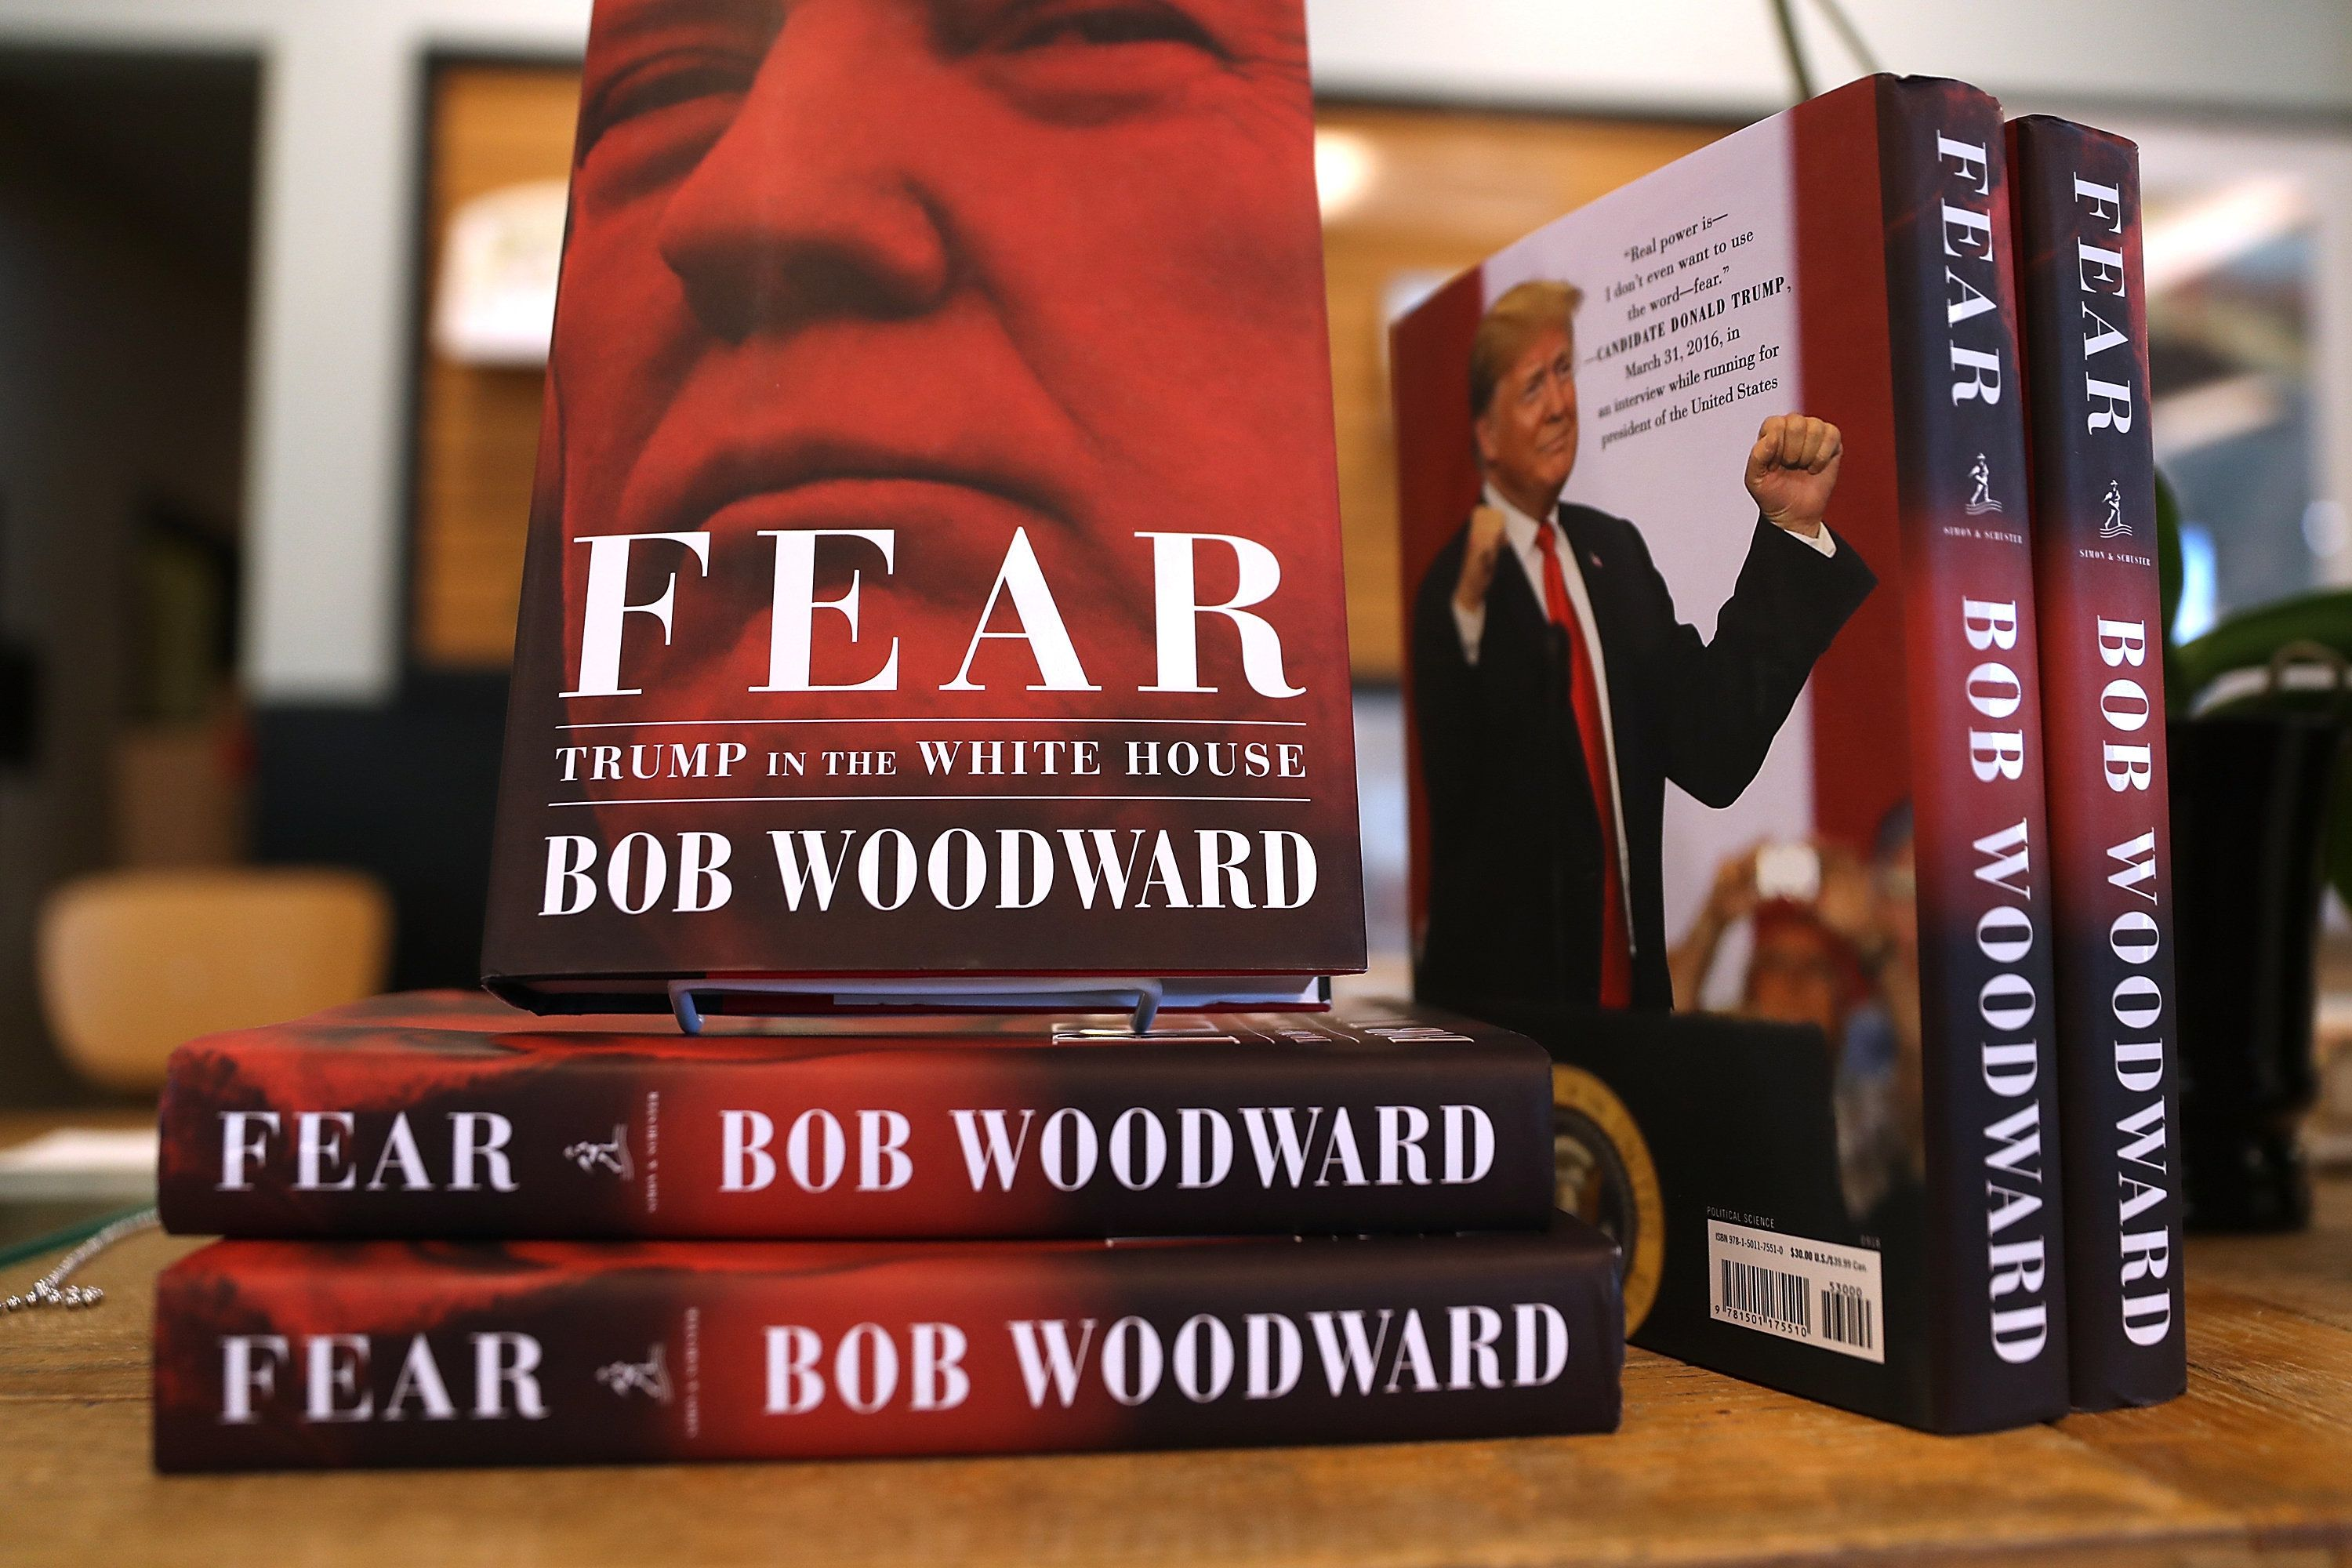 Bob Woodward says he would share source material for his new book, <i>Fear: Trump in the White House</i>, if his sources publ